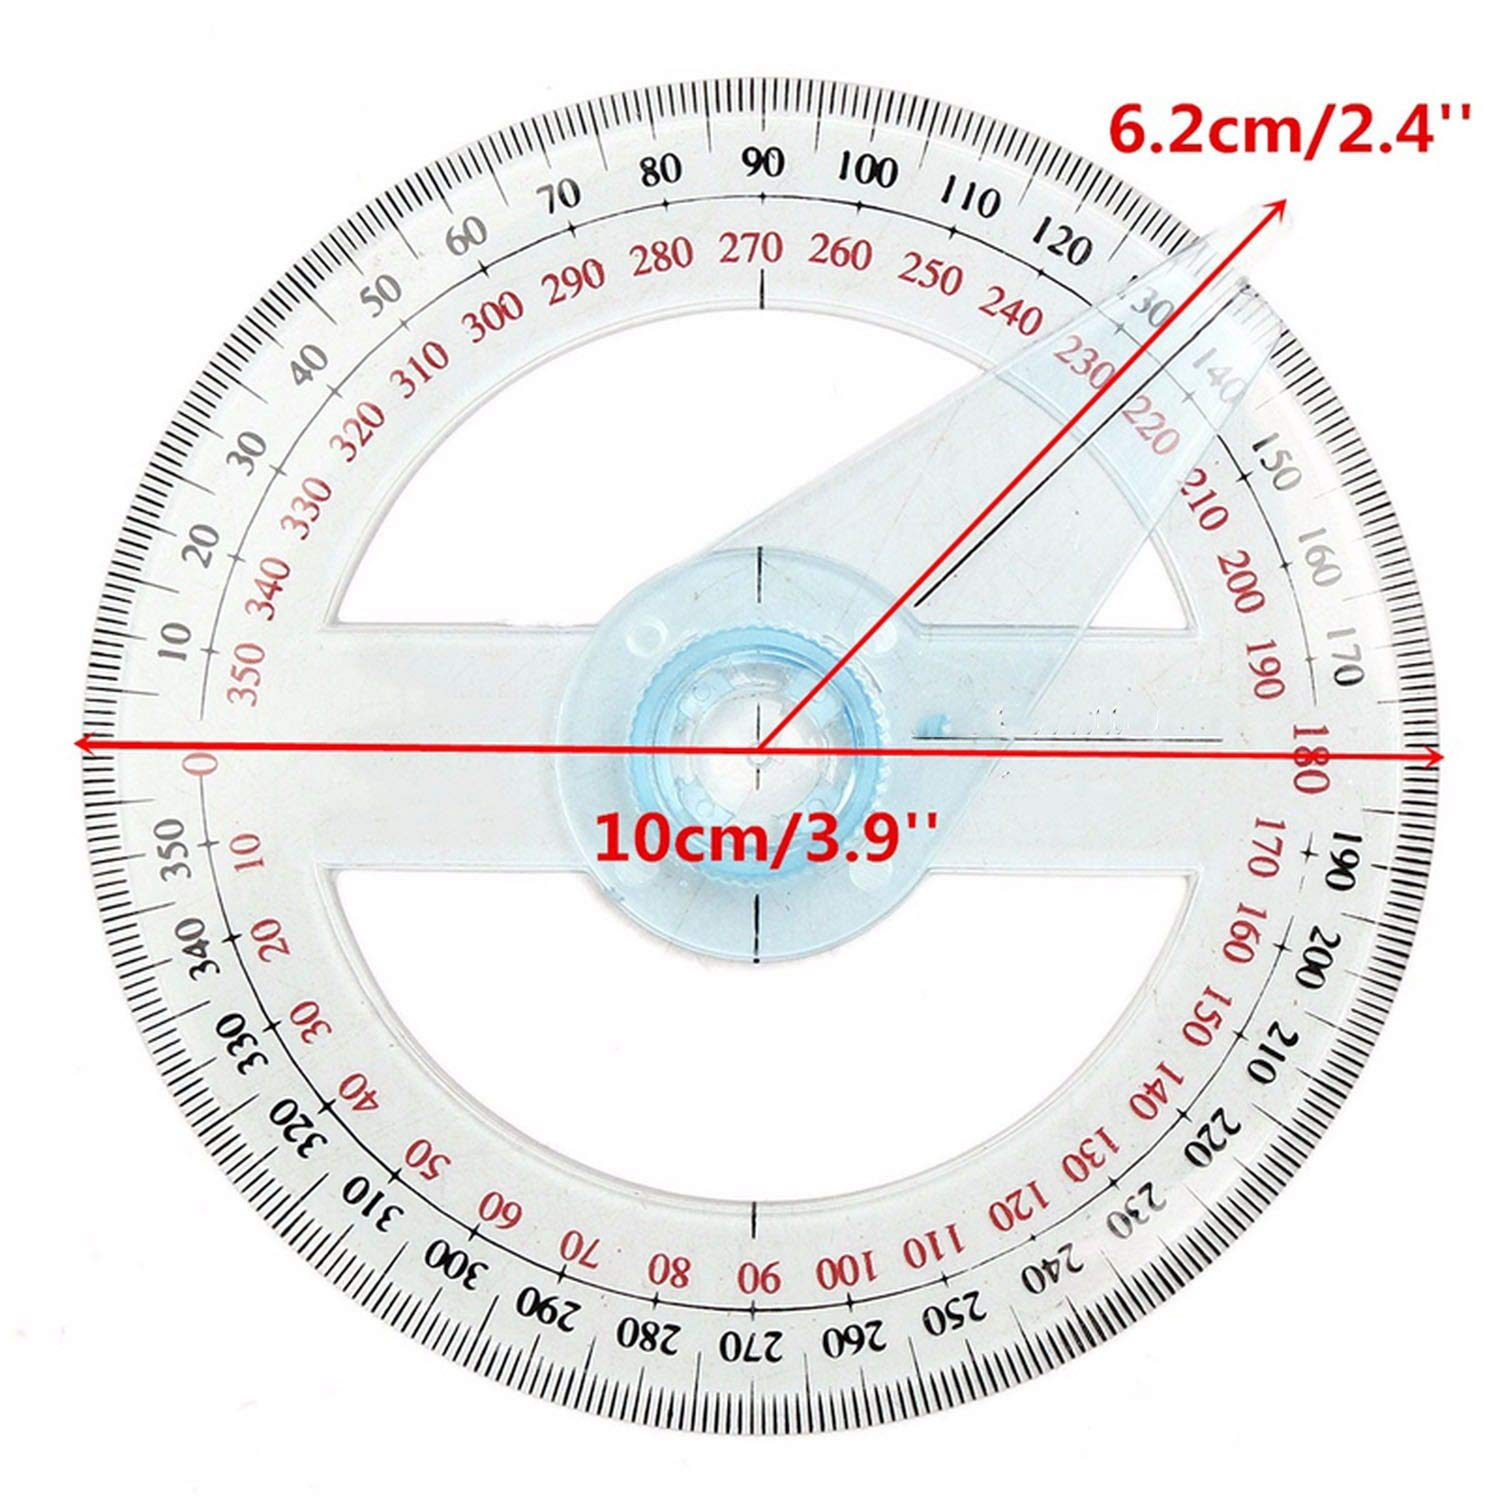 Portable Diameter of 10cm Plastic 360 Degree Pointer Protractor Ruler Angle Swing Arm for School Office Supplies,1 Pc by lucky-eye (Image #3)